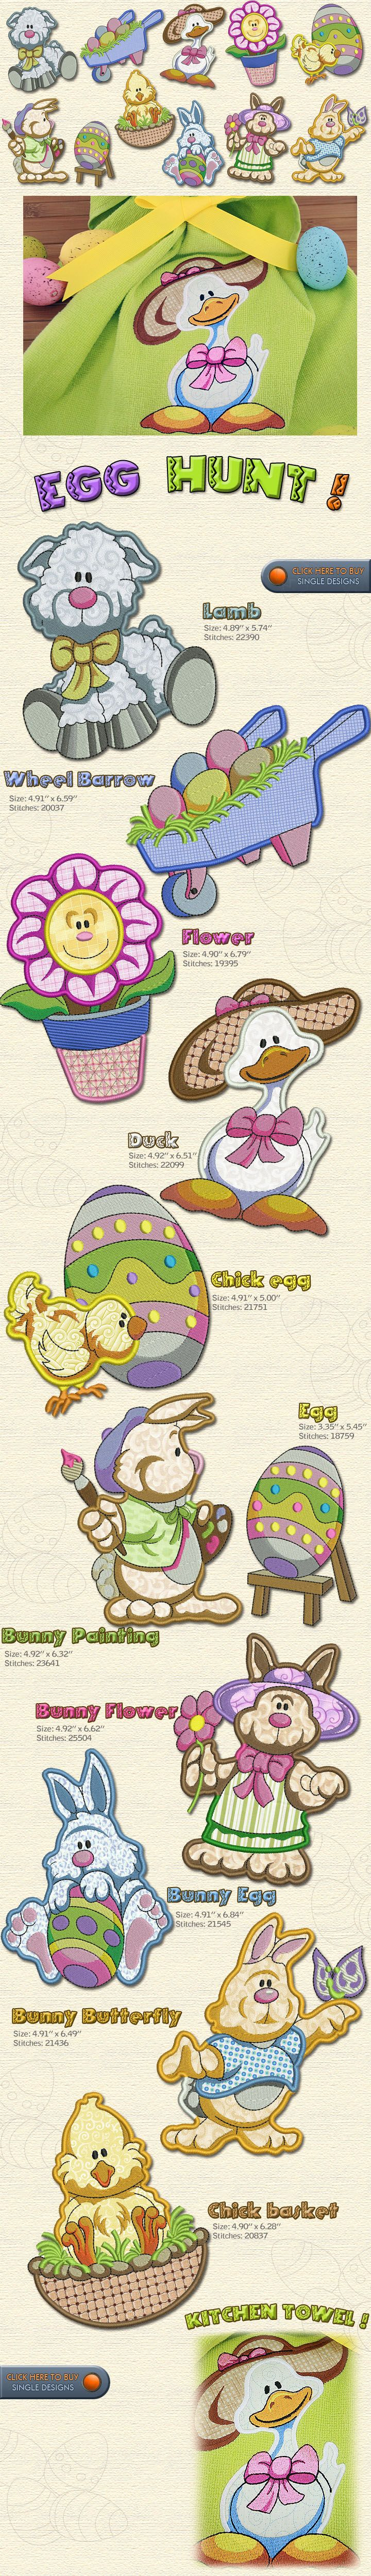 Egg Hunt Embroidery Designs Free Embroidery Design Patterns Applique